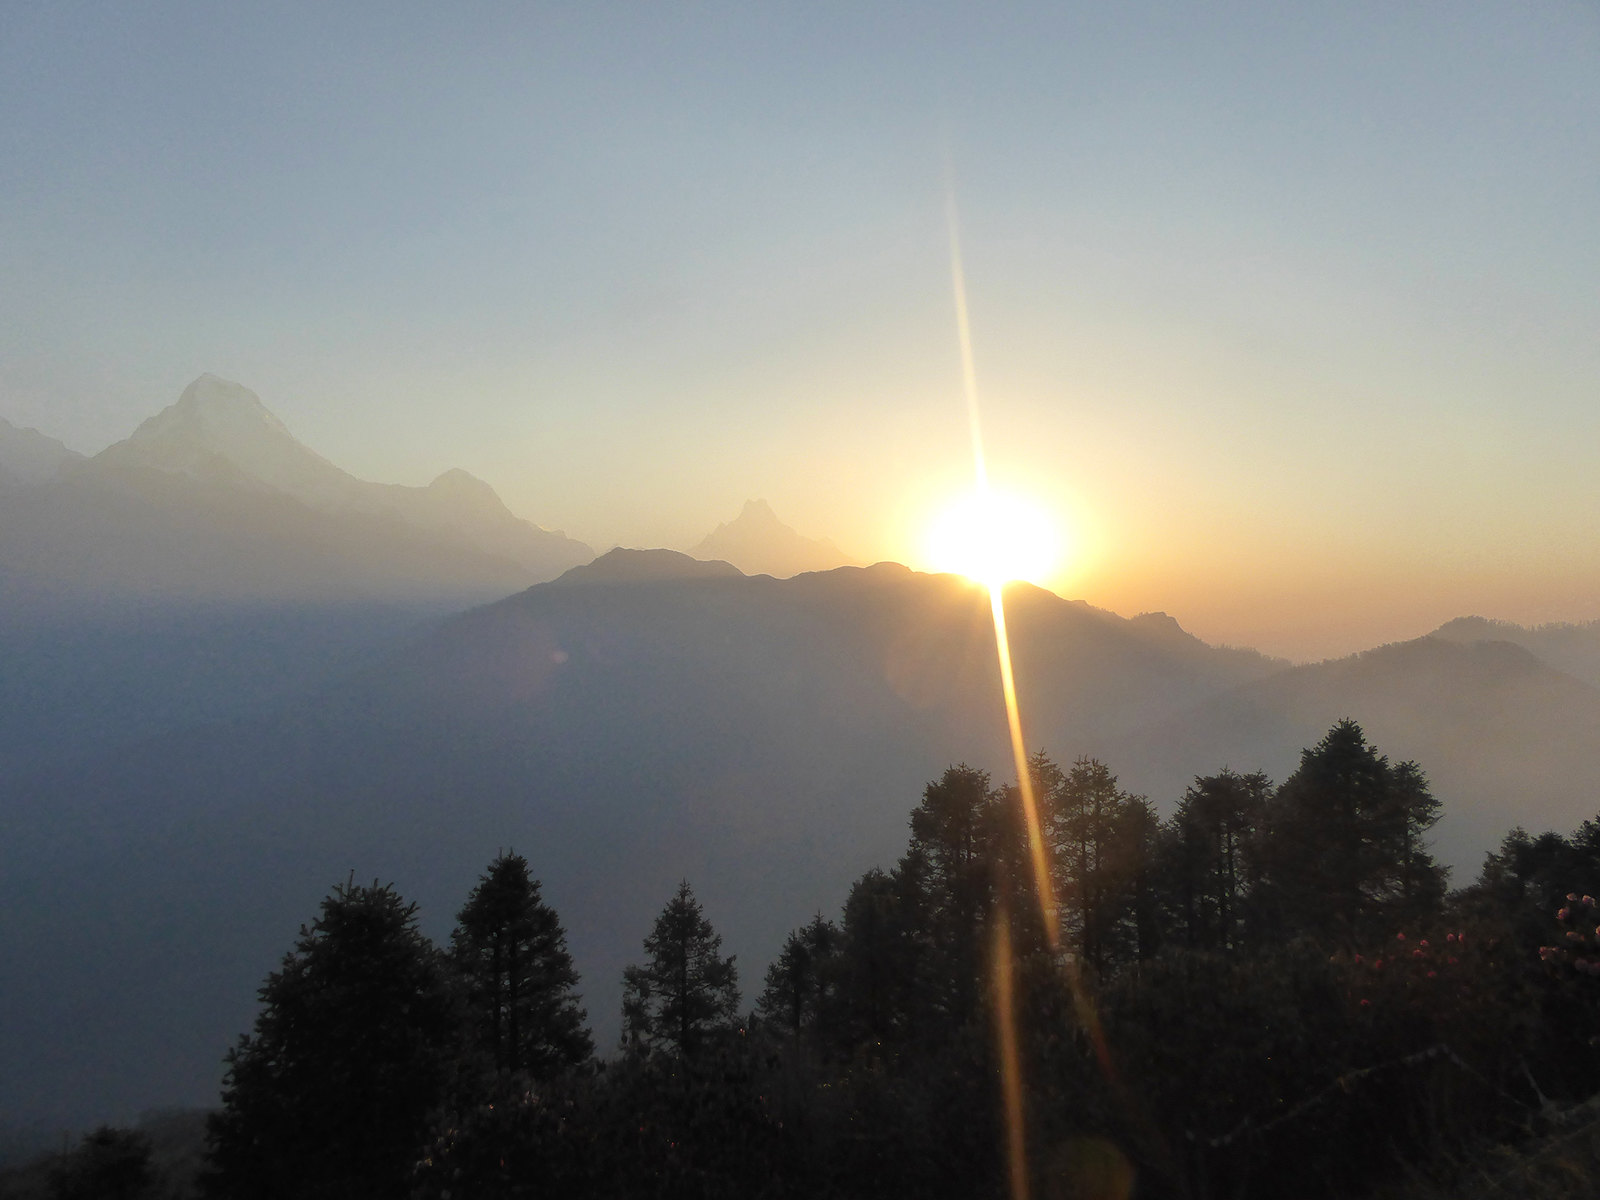 View of the major Himalayan Mountains around Annapurna at sunrise from Poon Hill in Nepal